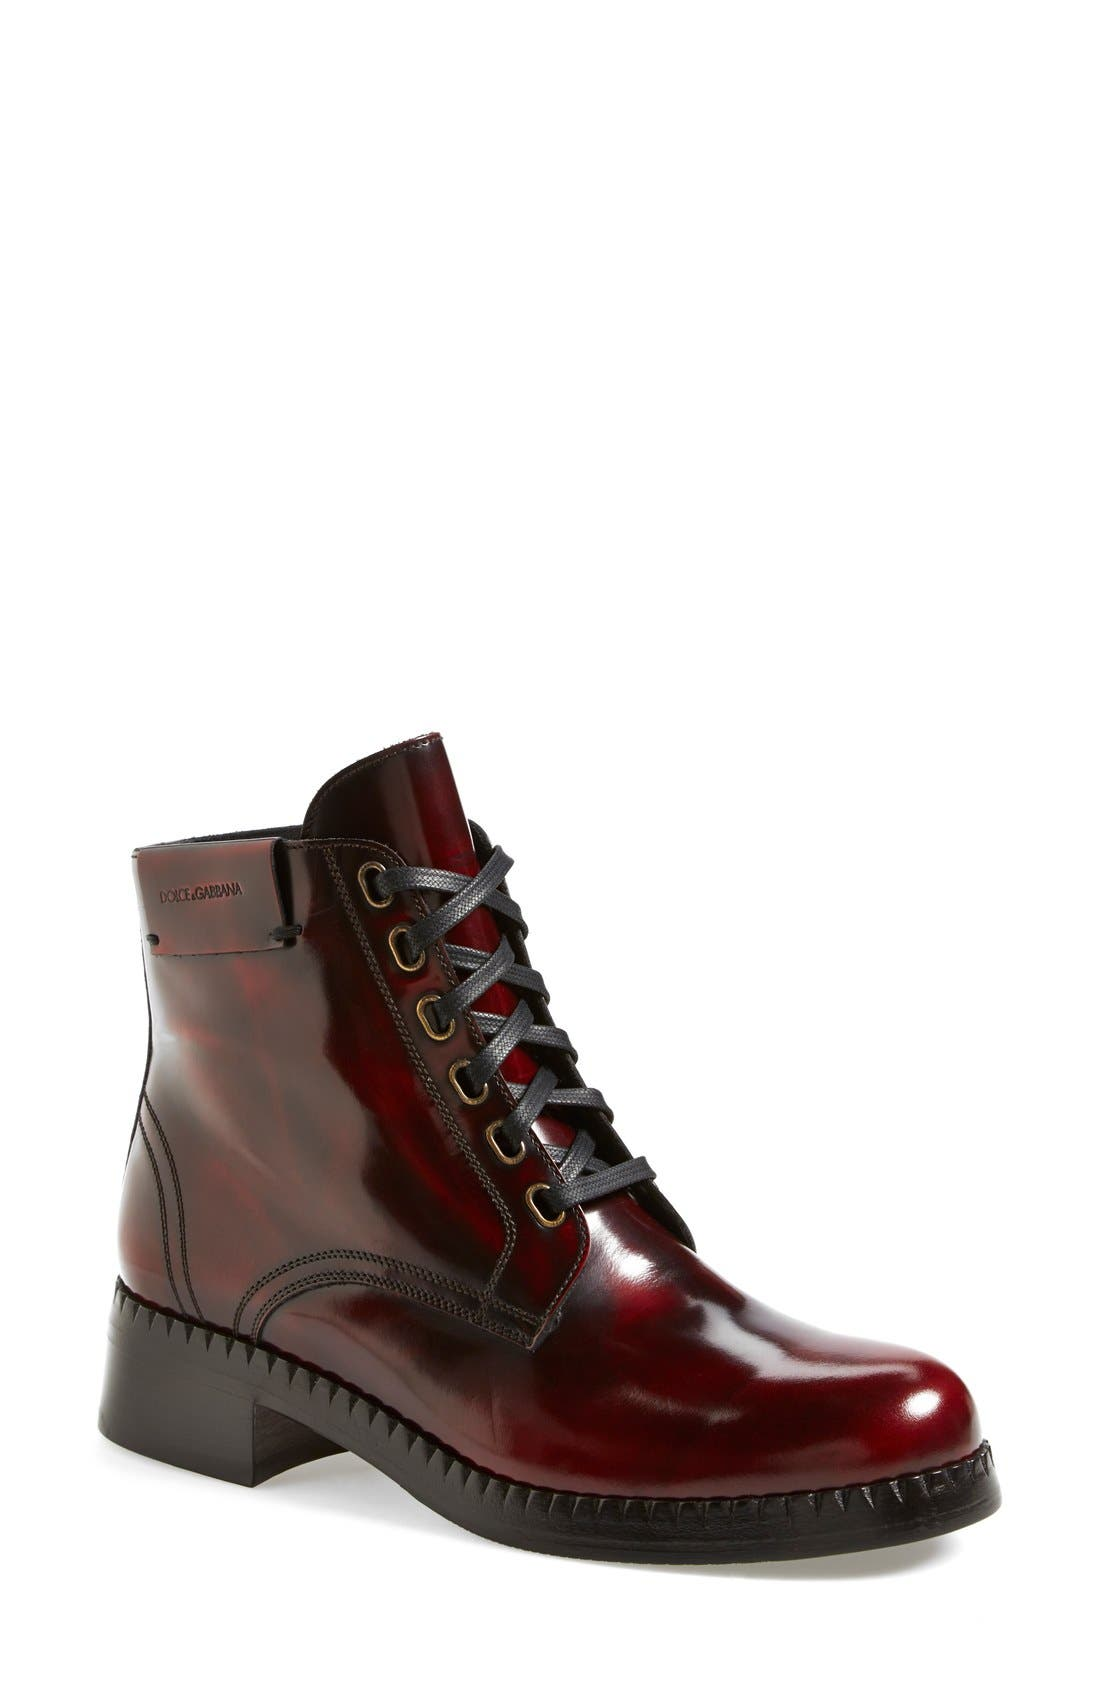 Main Image - Dolce&Gabbana Lace-Up Ankle Boot (Women)